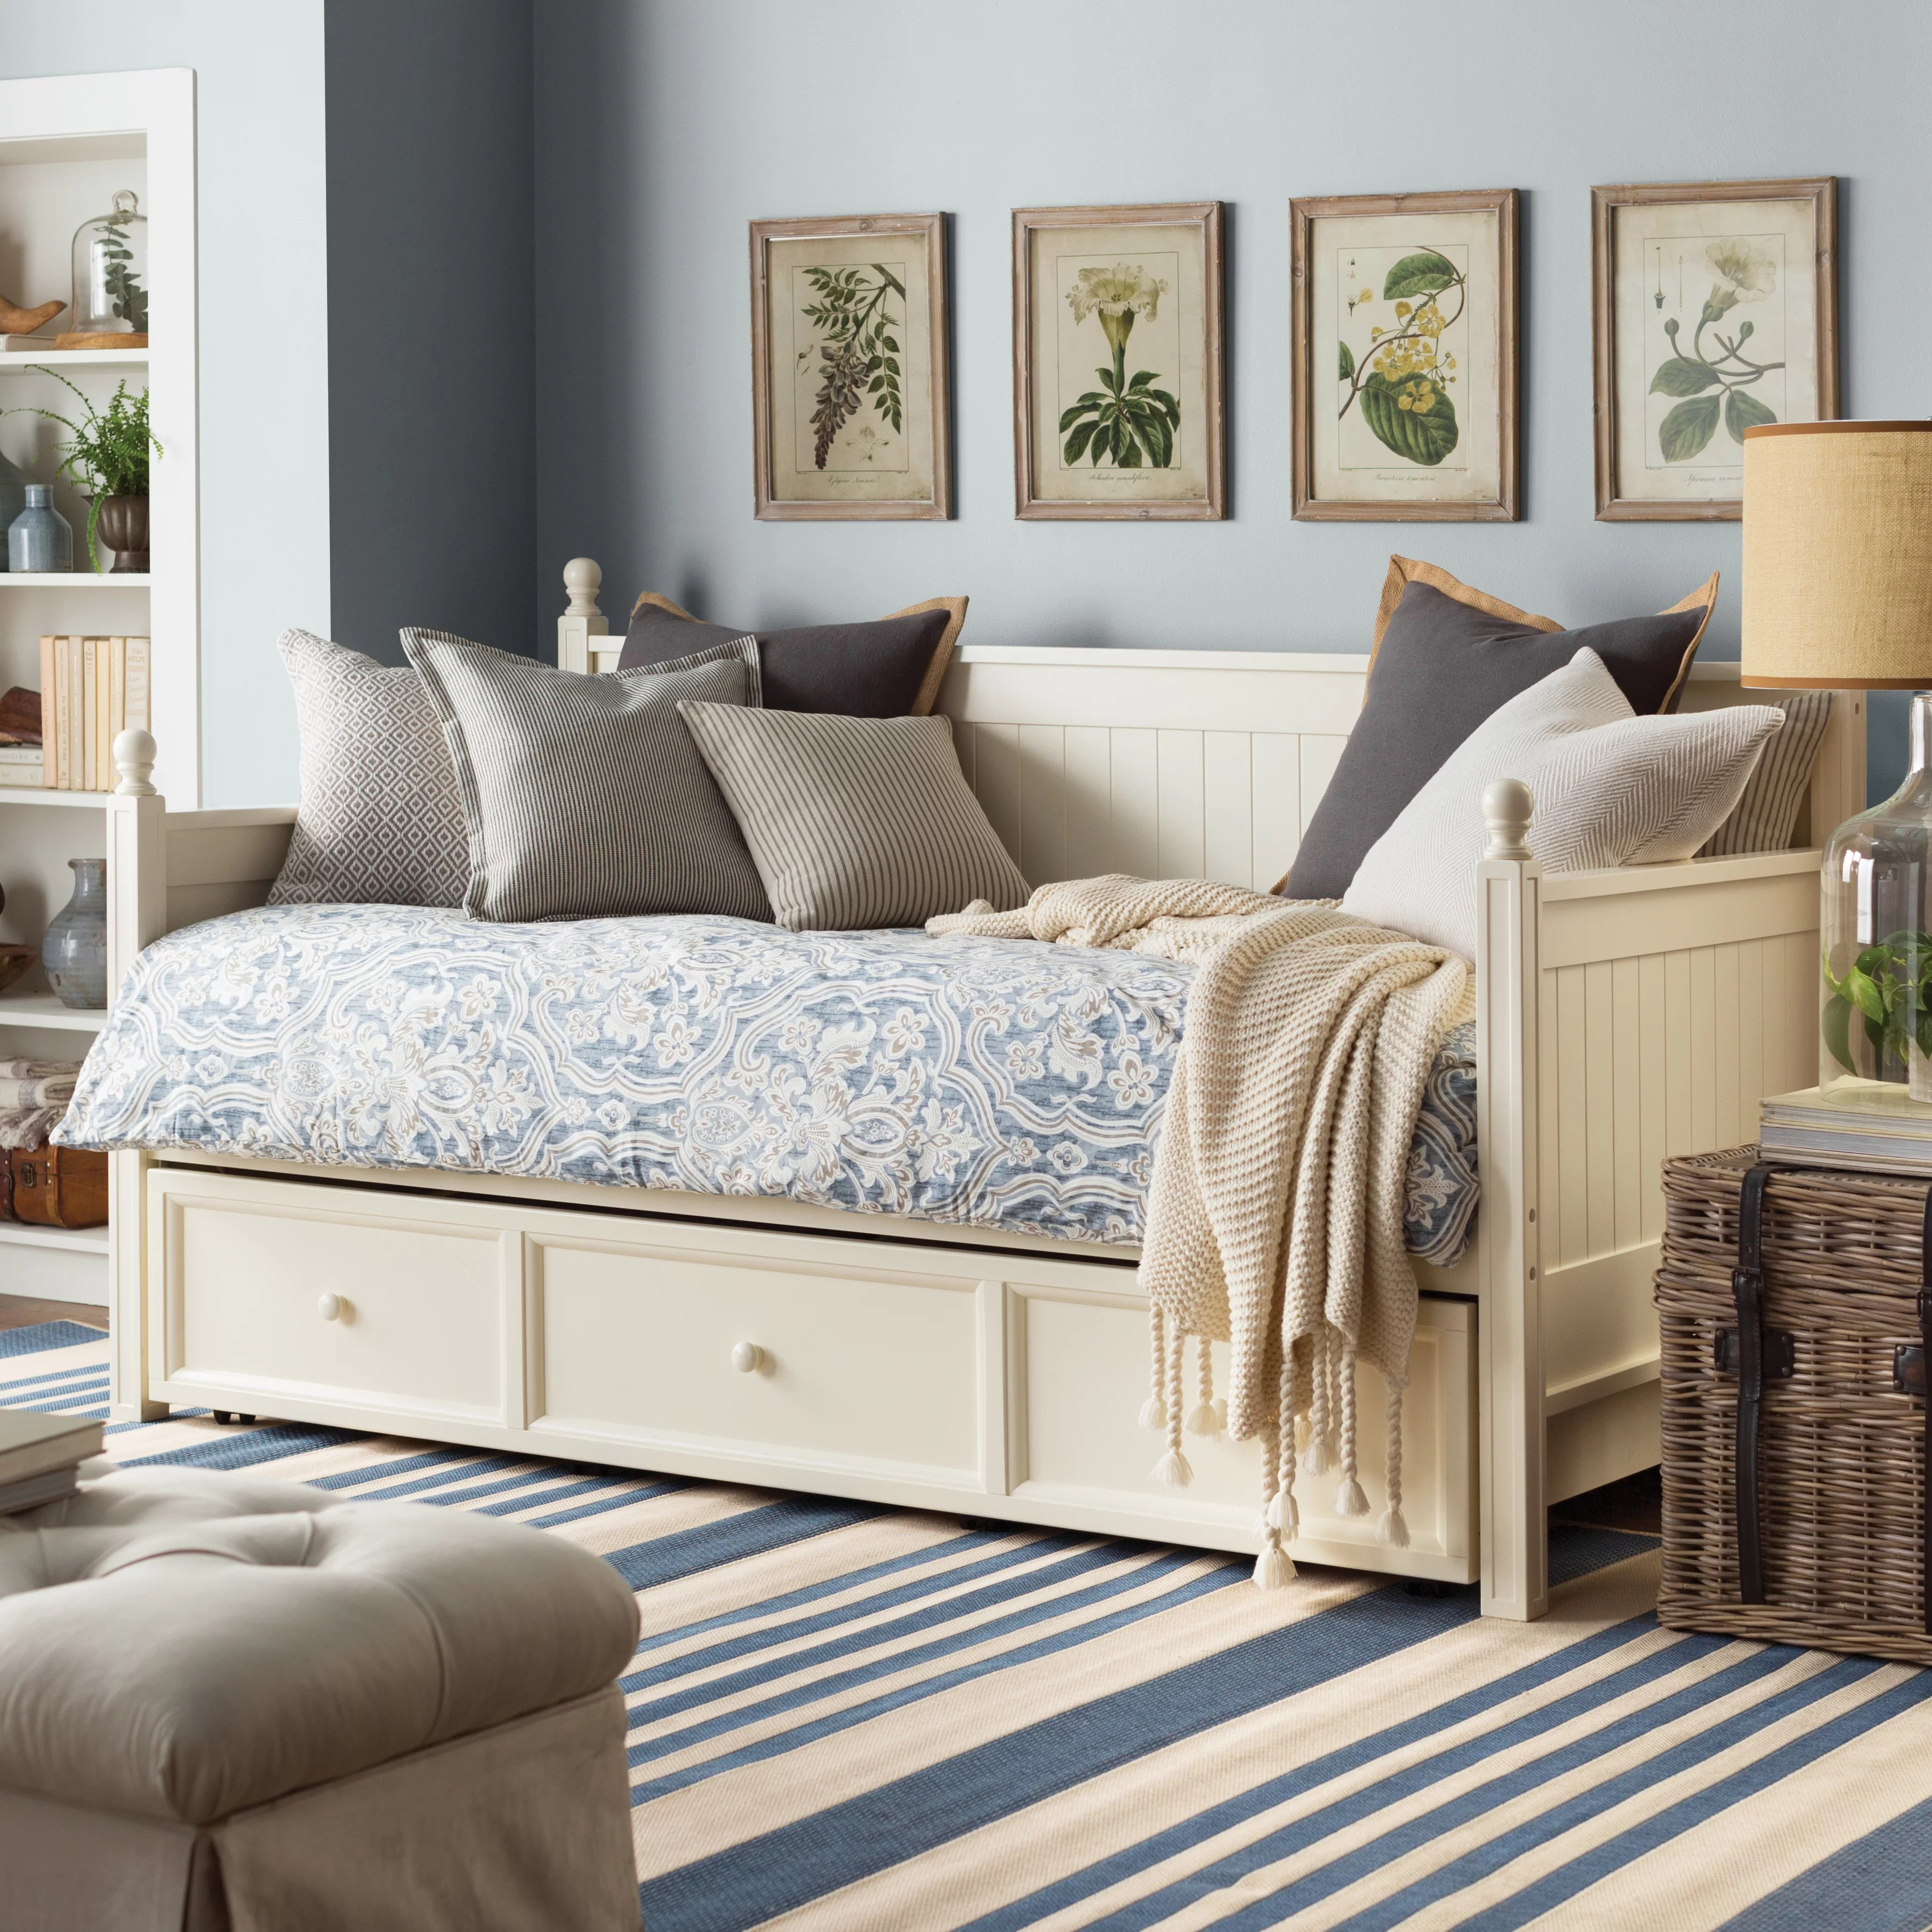 Bed Bedroom Furniture Farmhouse Rustic Bedroom Furniture Birch Lane